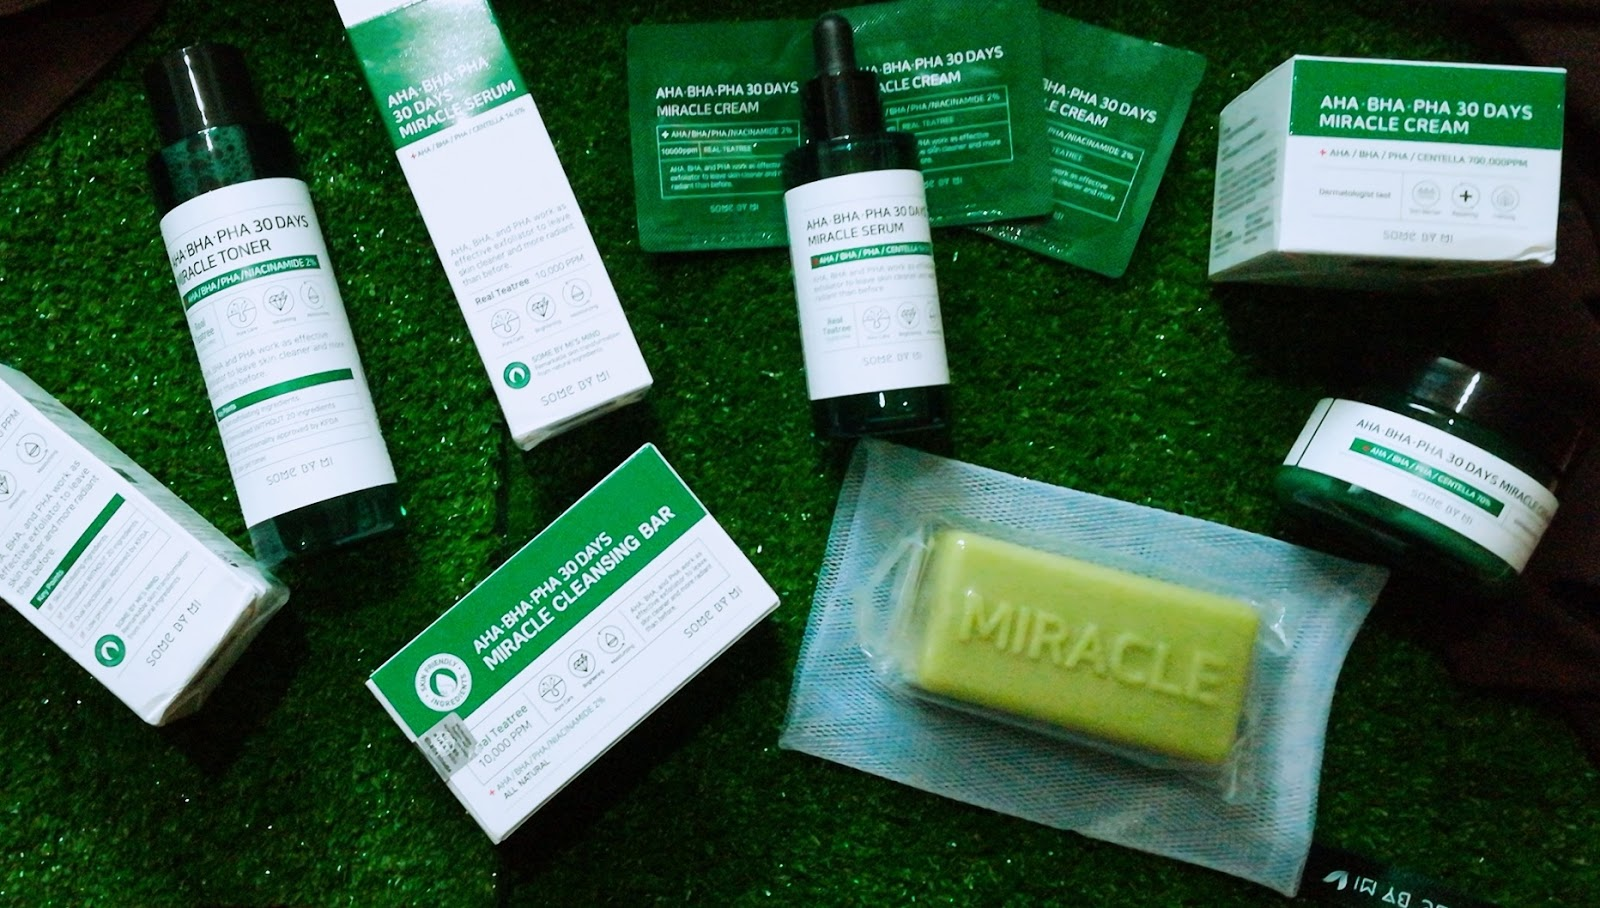 Korean Viral Skincare Some By Mi Review Does It Really Work Somebymi Aha Bha Pha 30 Days Miracle Cleansing Bar 106g Me Cleanser First Step Is The Contains Only Safe Ingredients A Making Soap To All Given Skin